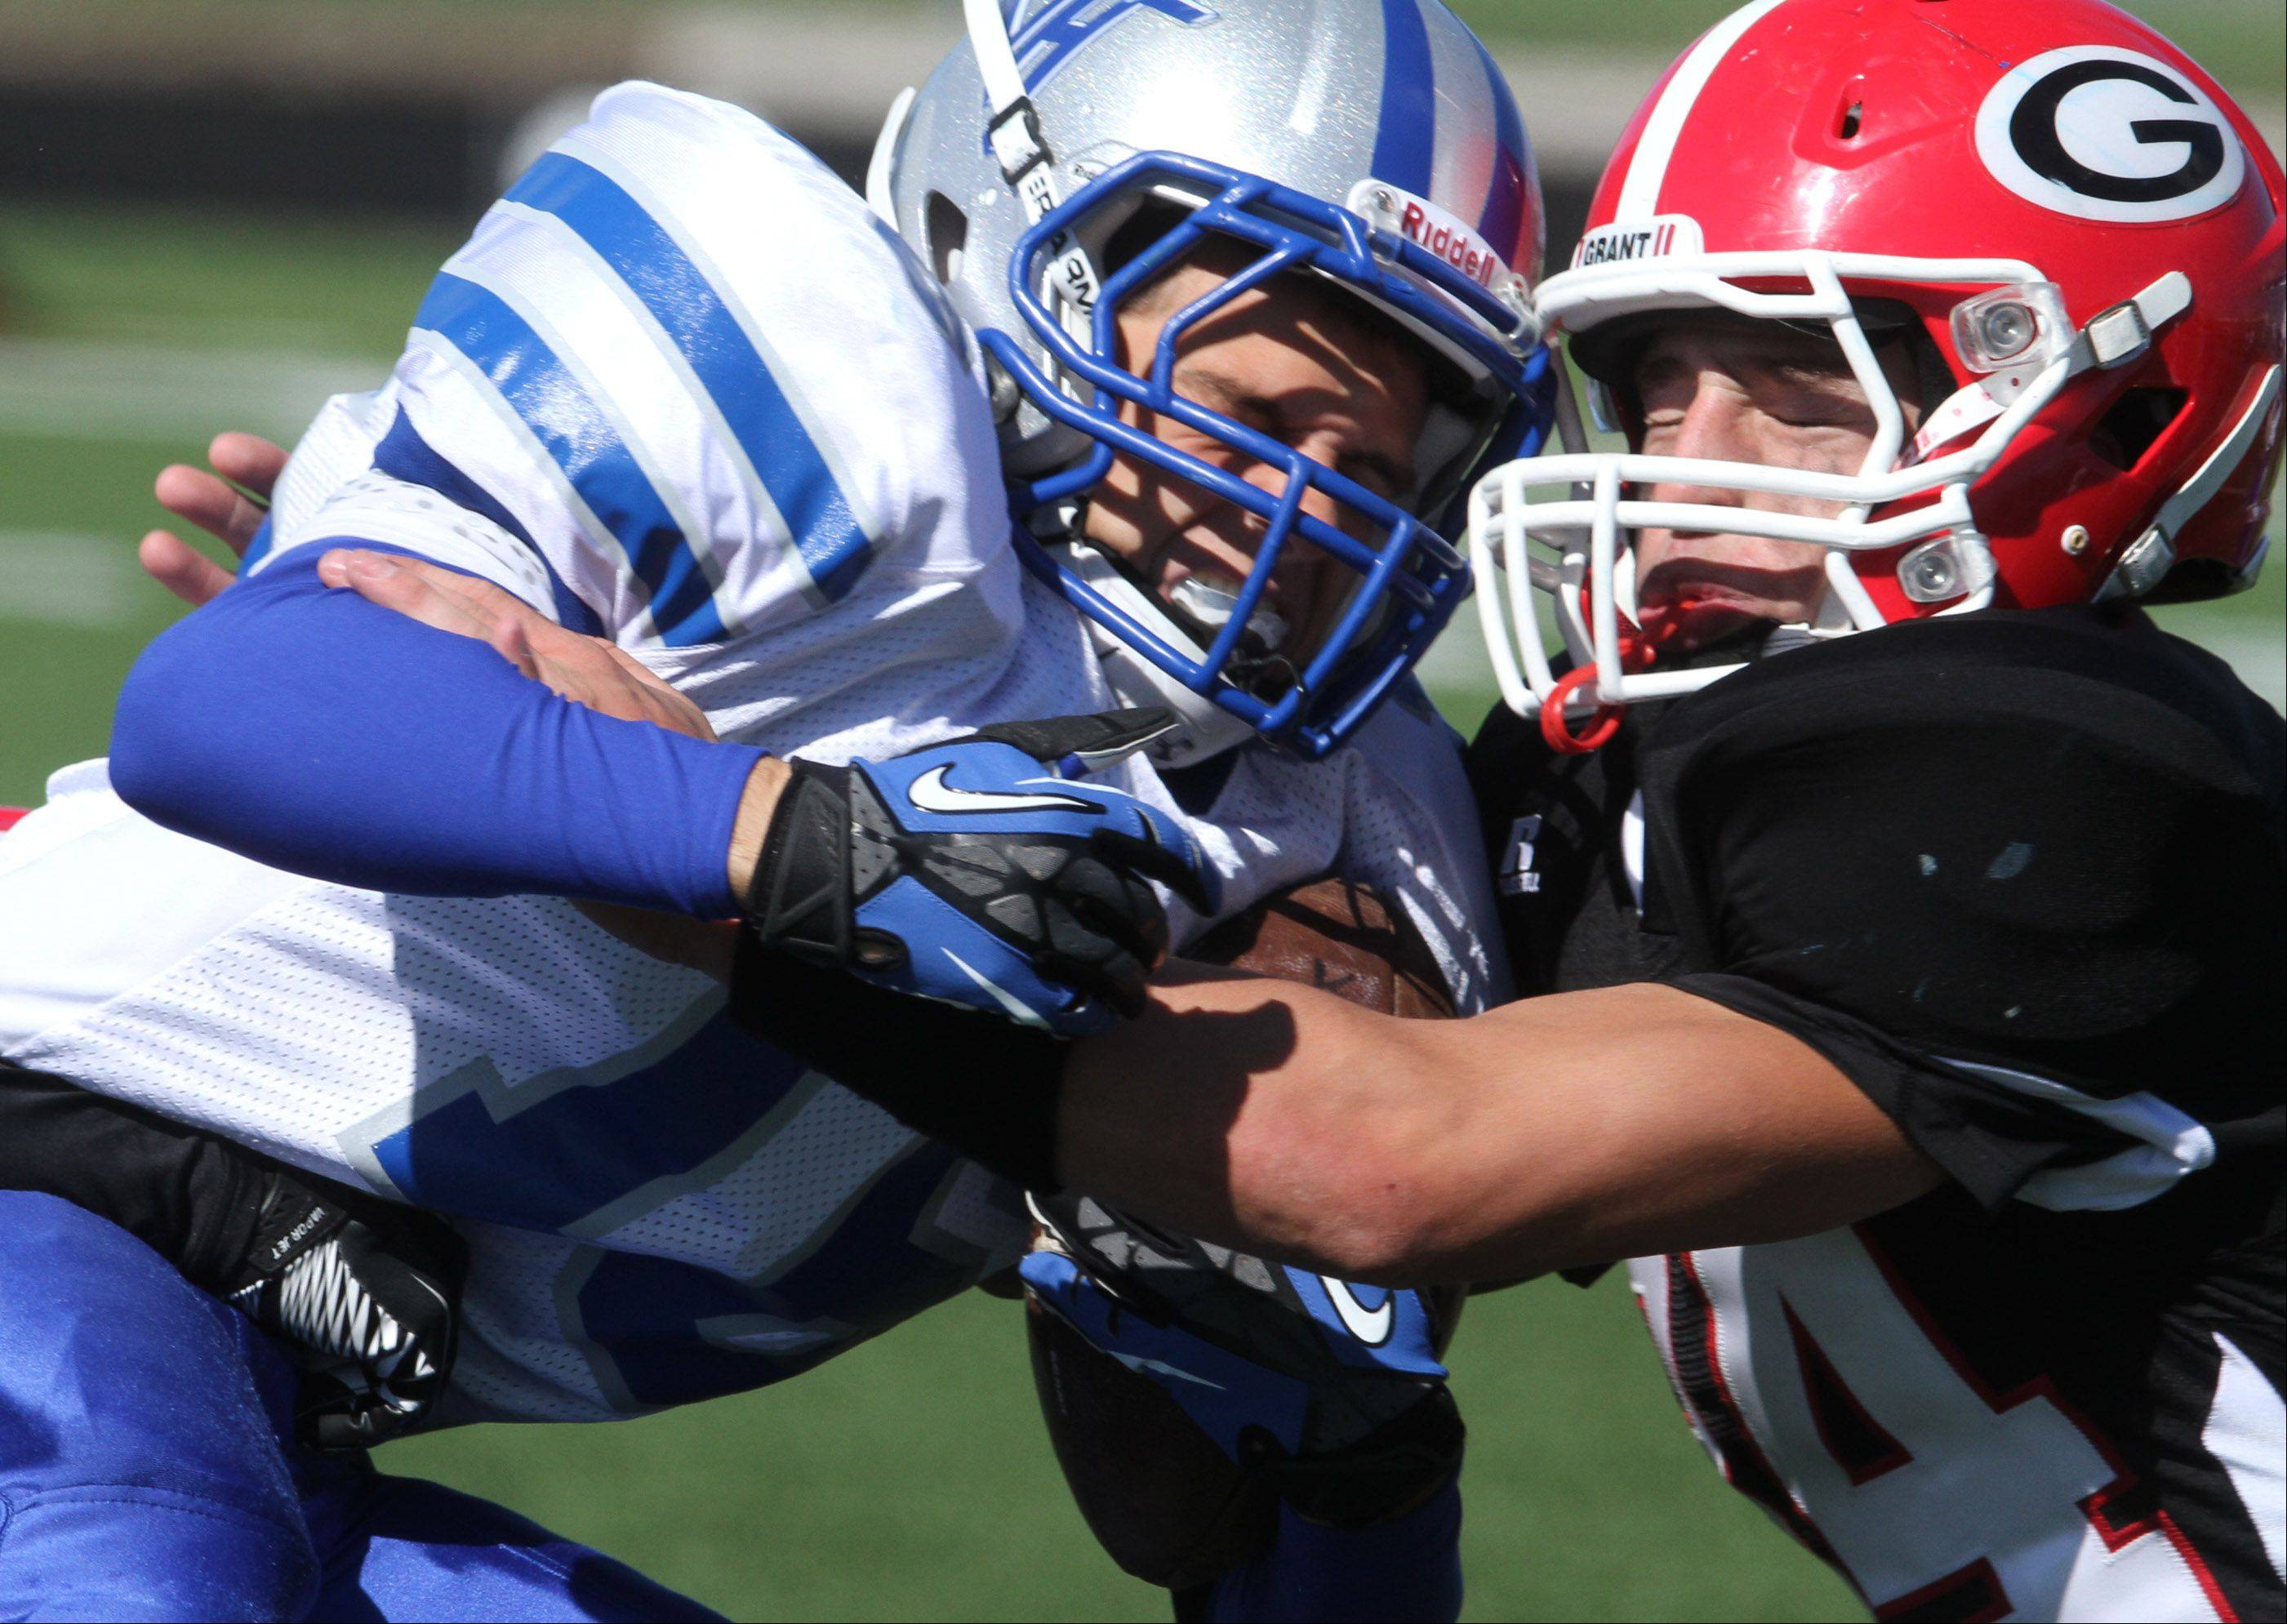 Vernon Hills' Ilya Fedorovich is tackled by Grant defender Dan King on Saturday in Fox Lake.